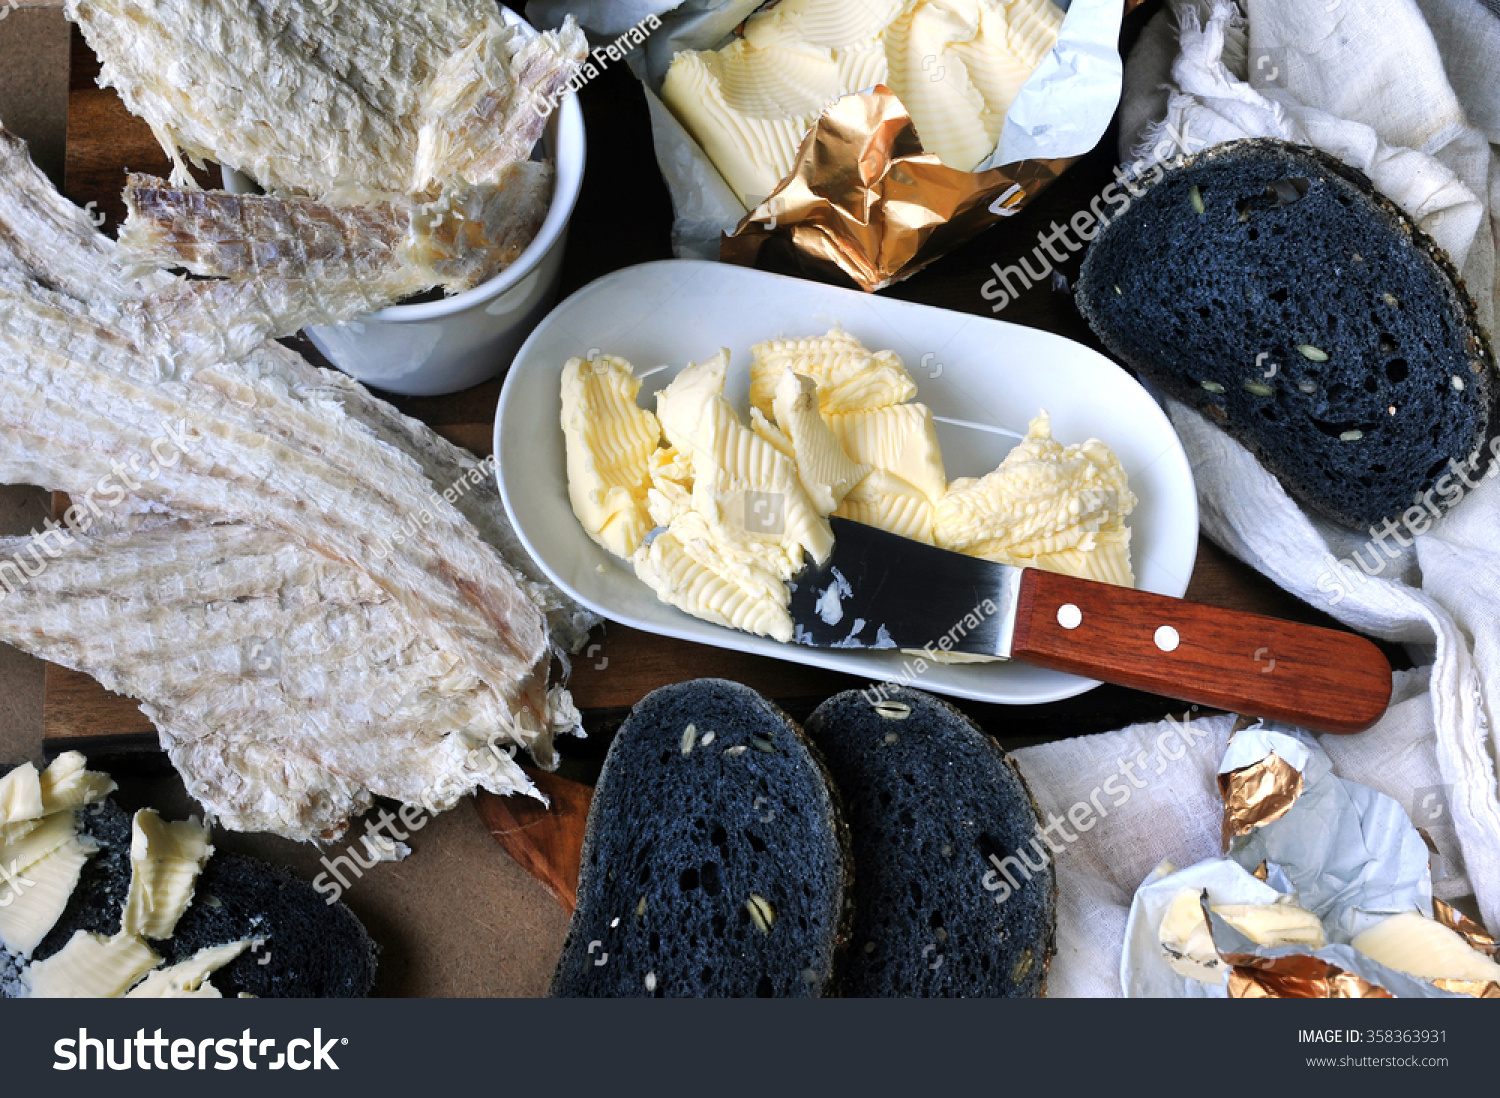 Icelandic typical dried fish hardfiskur charcoal stock for Fishing with bread